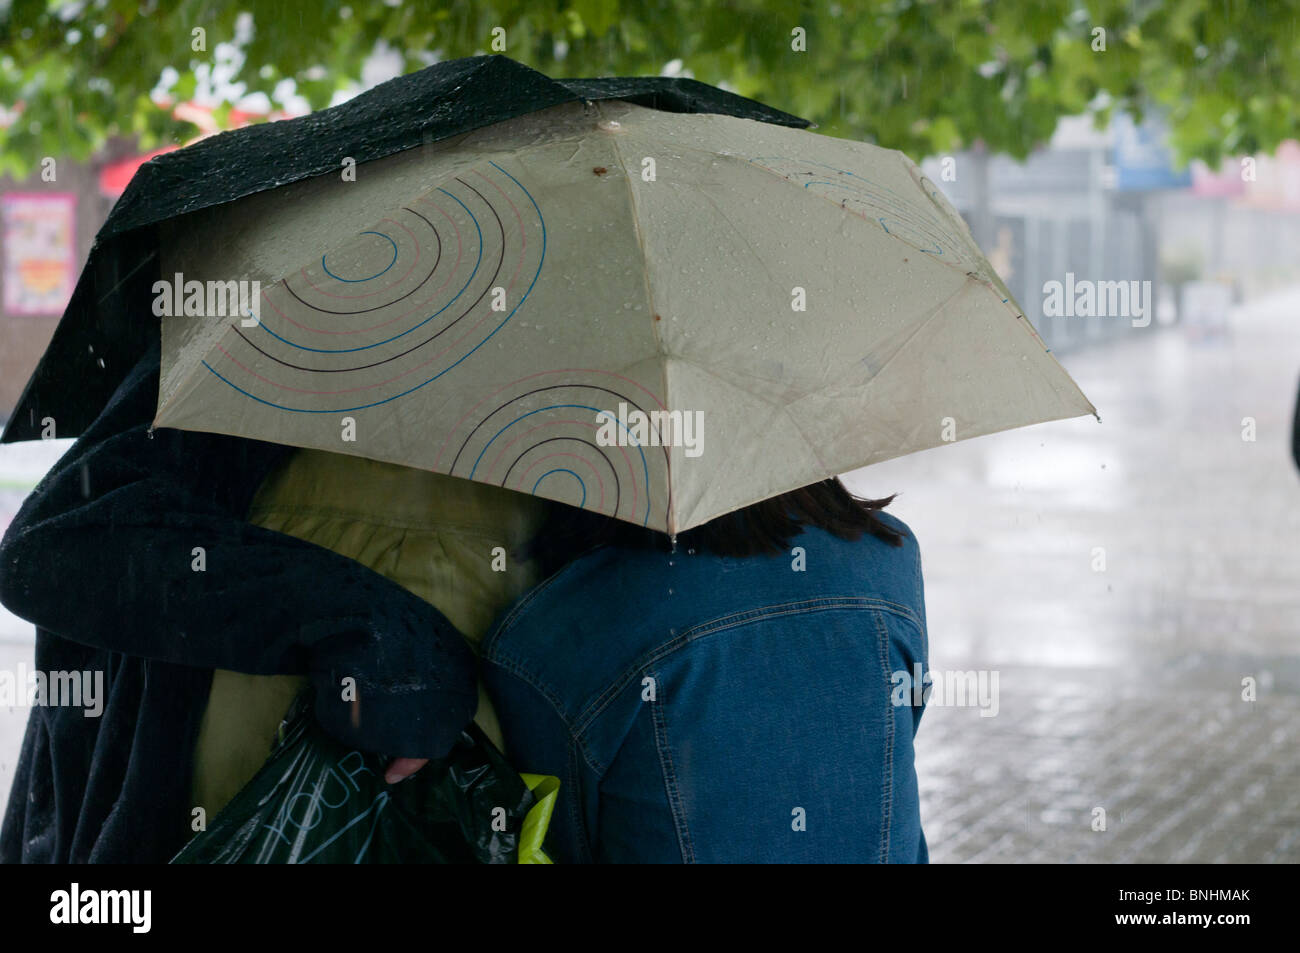 Raining in London - Stock Image